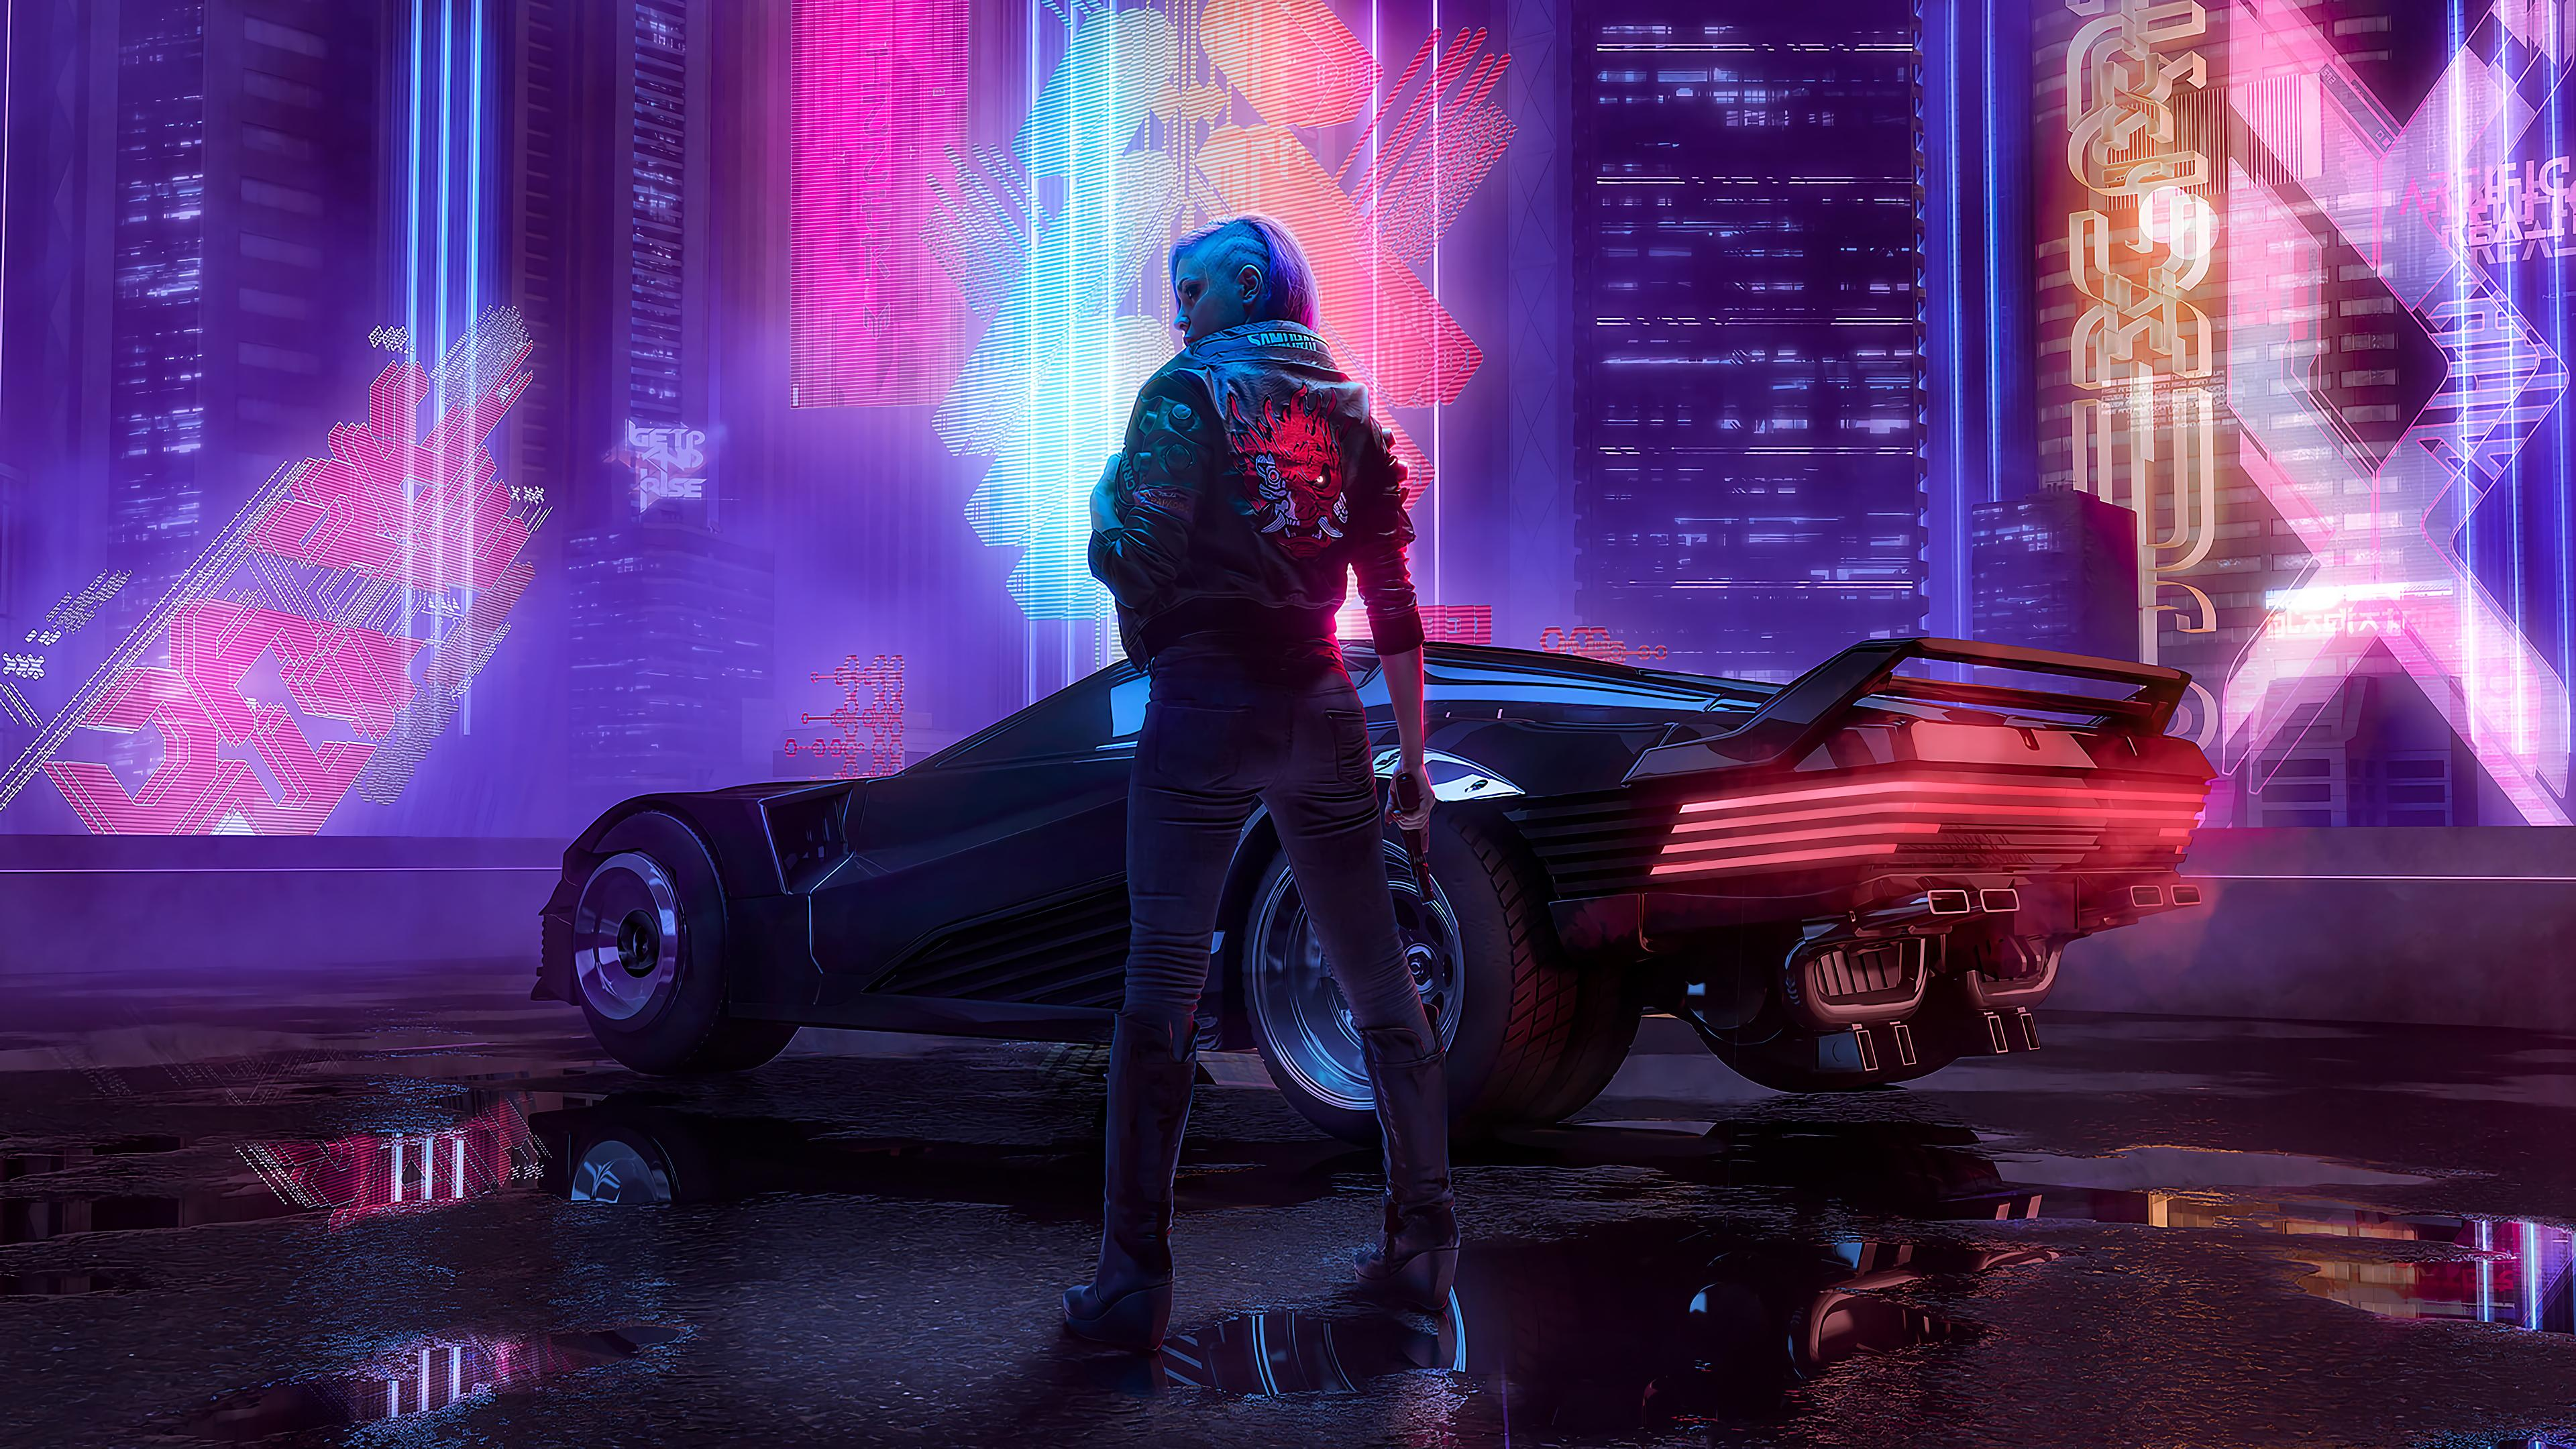 Cyberpunk 4k Wallpapers For Your Desktop Or Mobile Screen Free And Easy To Download